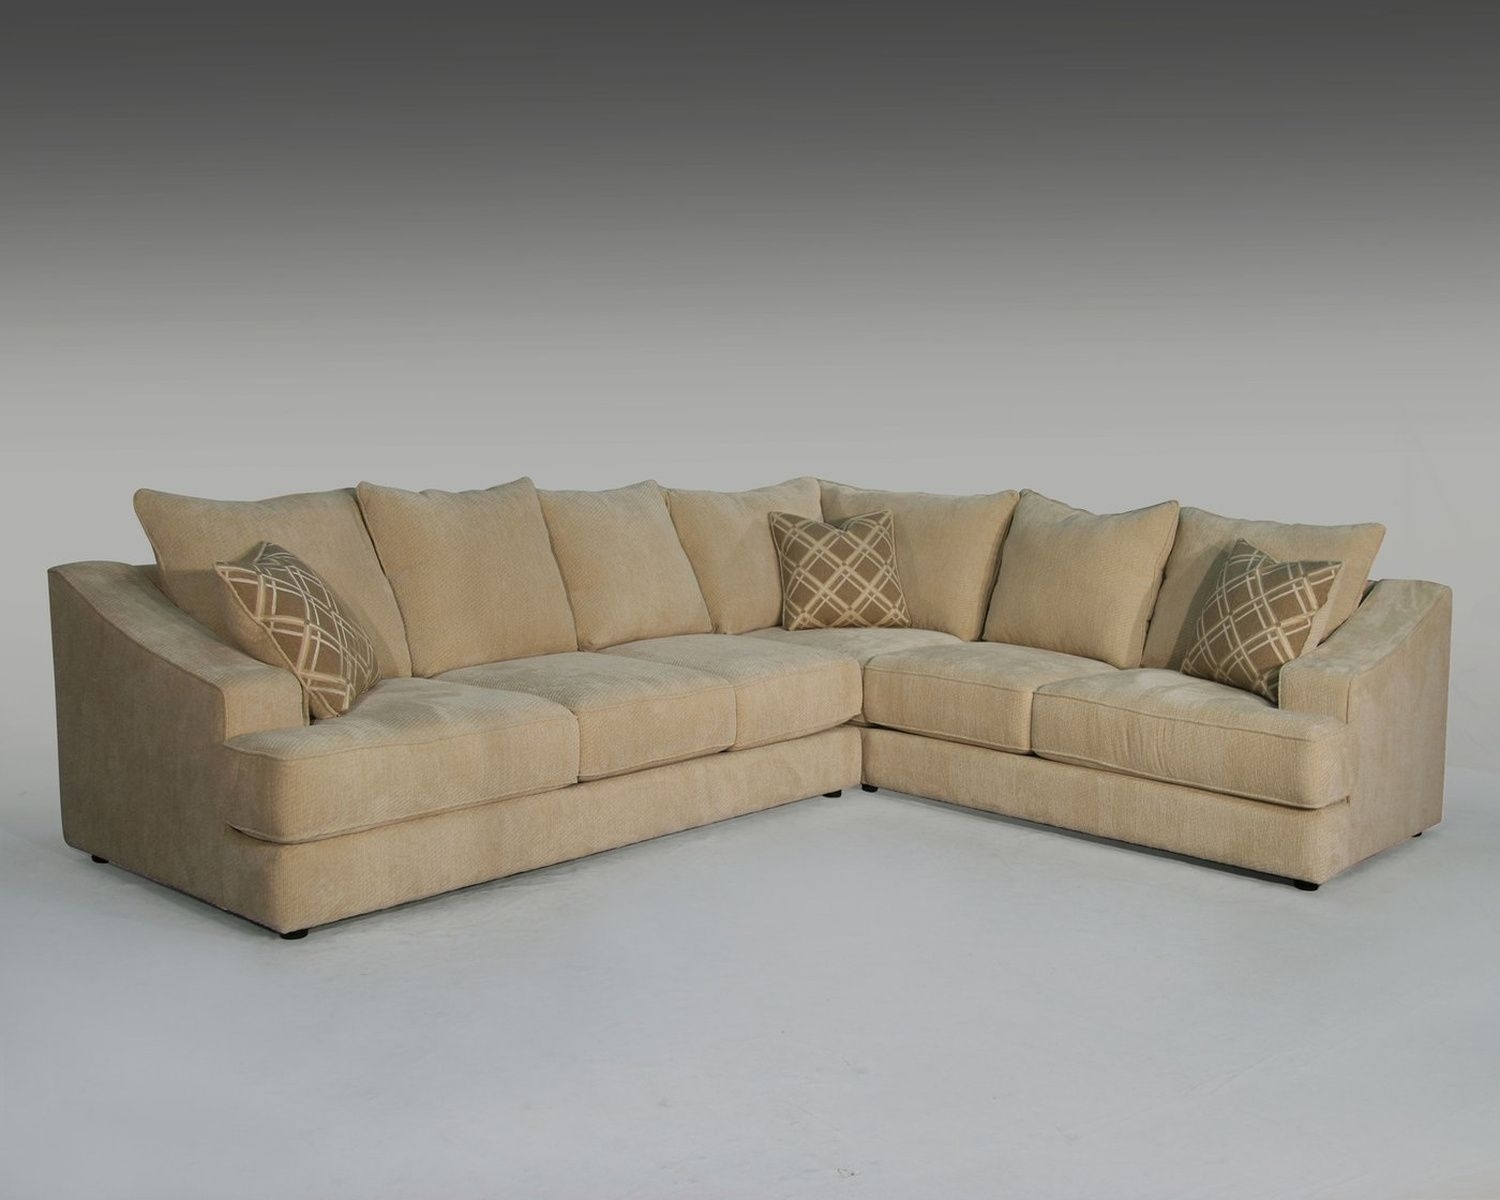 Nantahala Faux Leather Reclining Sectional With 2 Consoles throughout Aspen 2 Piece Sectionals With Raf Chaise